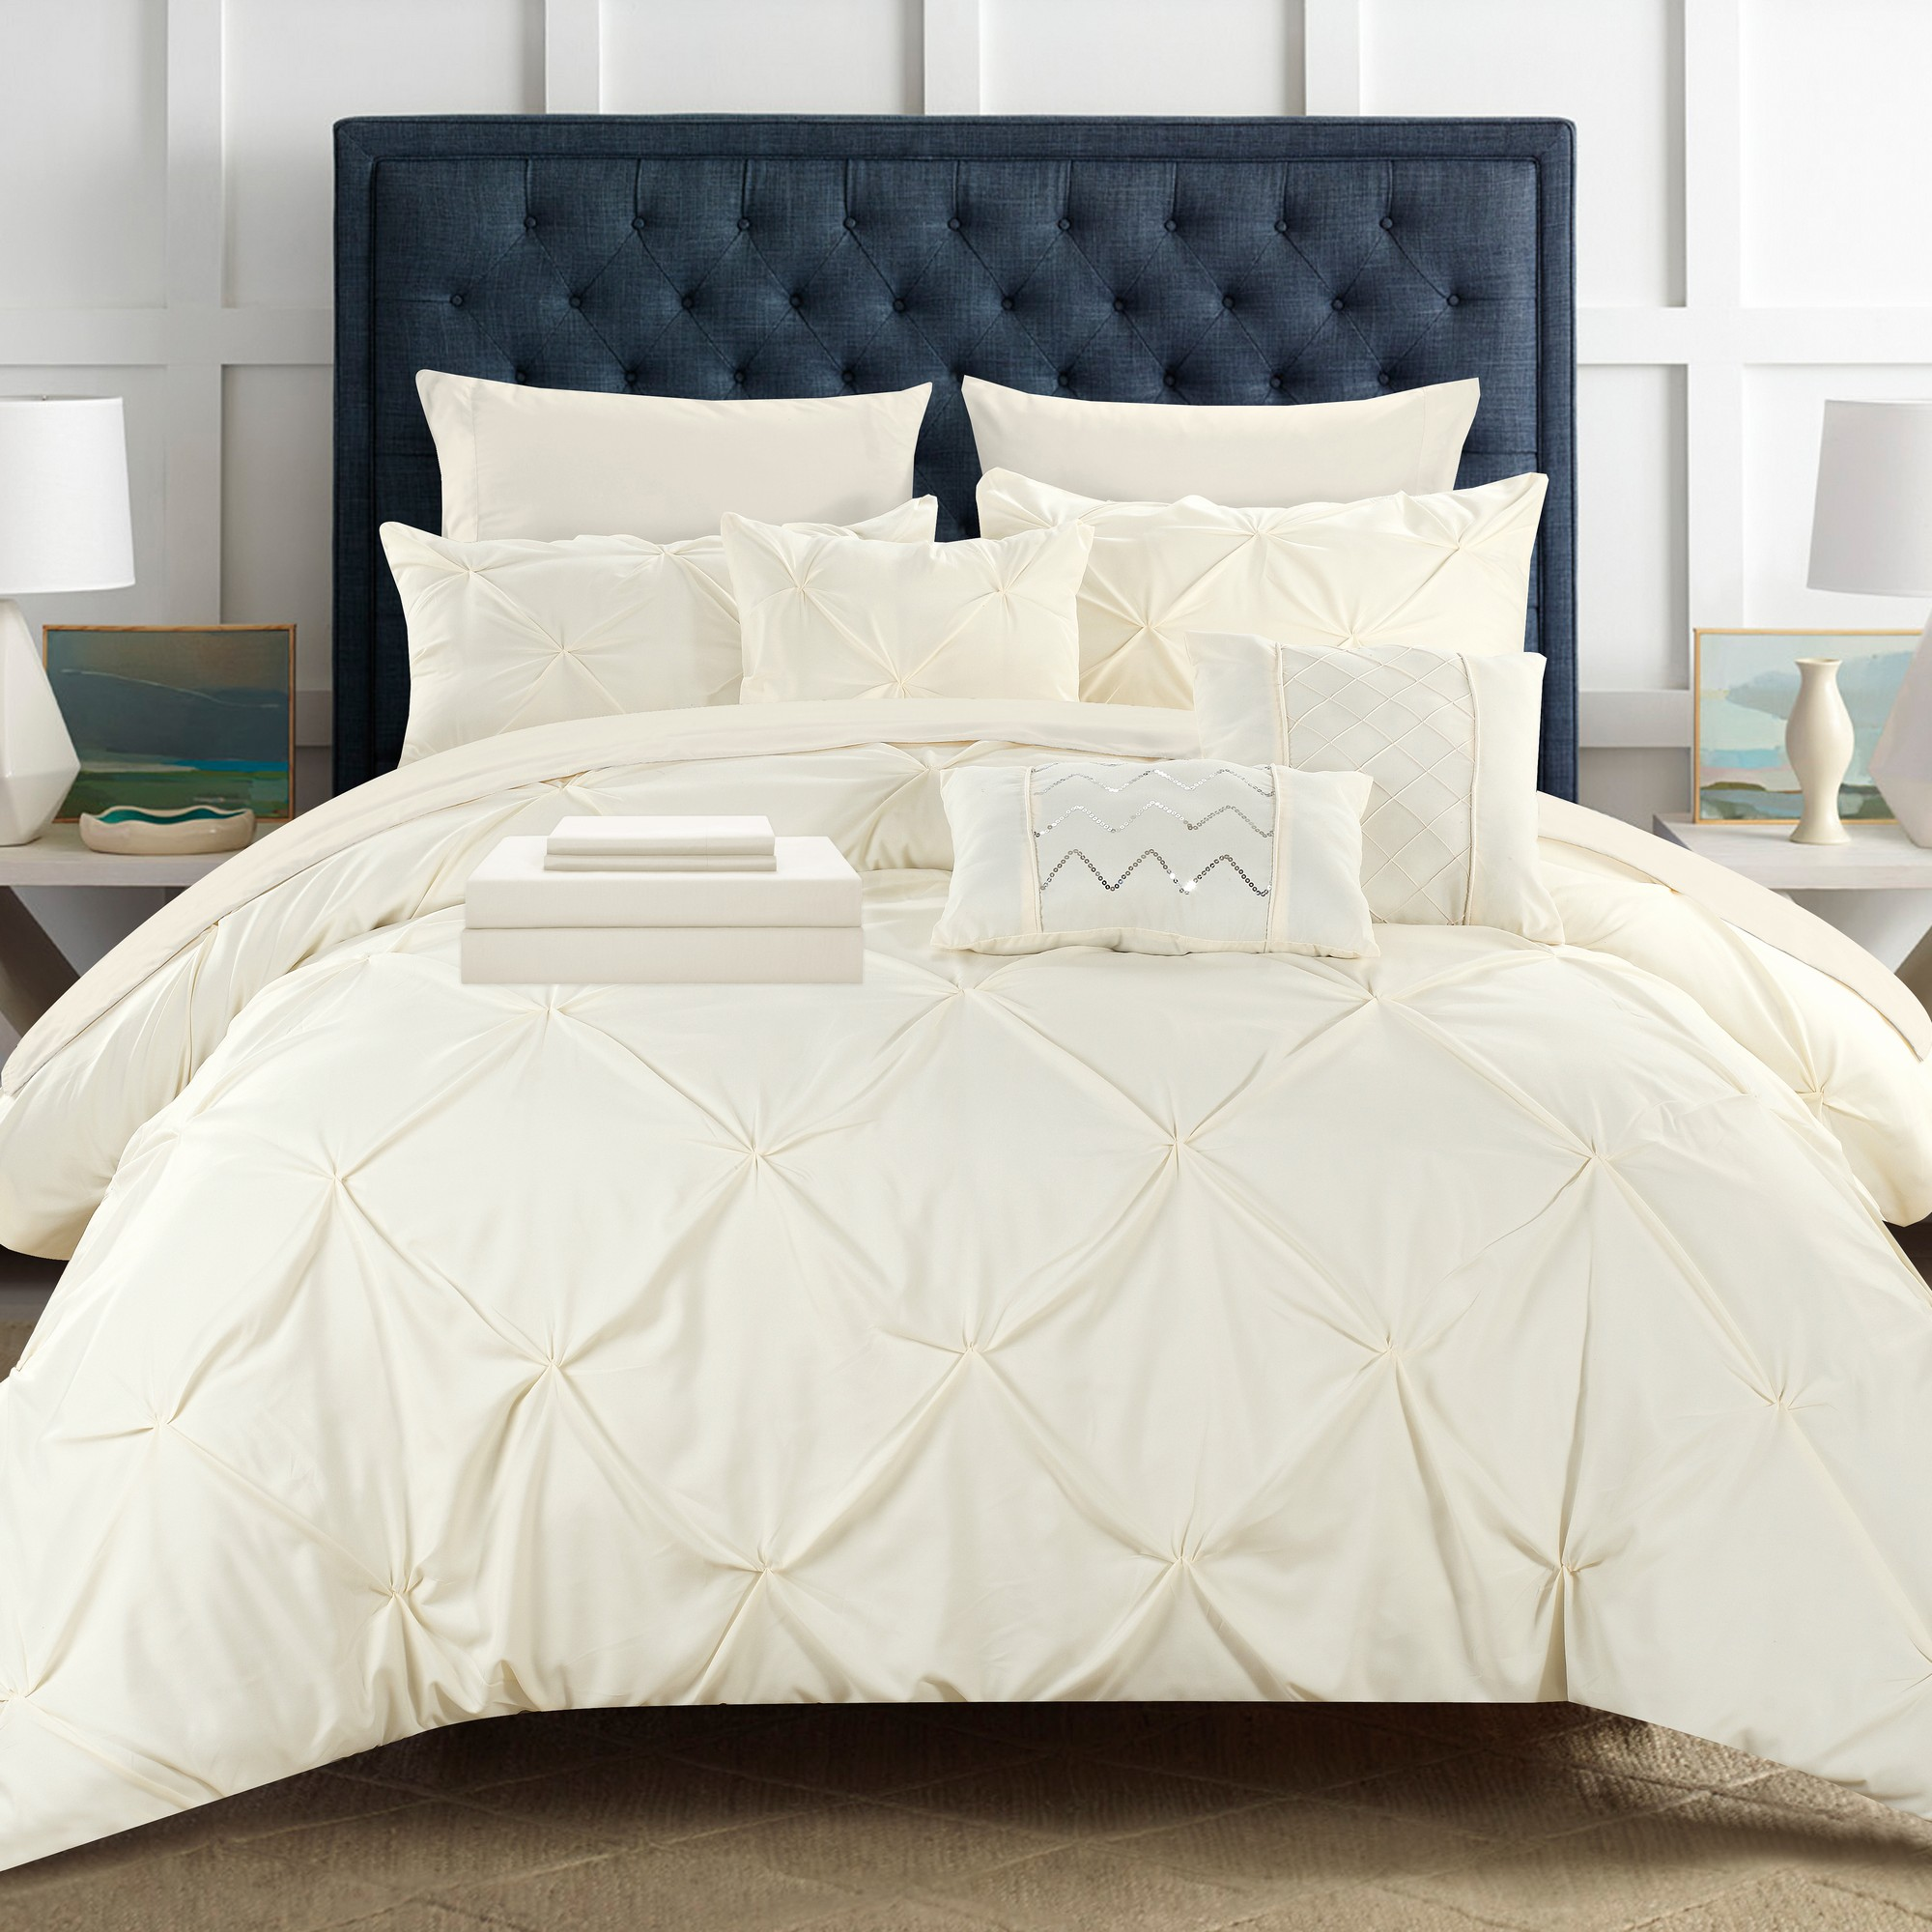 10 Piece Mycroft Pinch Pleated Bed In A Bag Comforter Set Sheets Pillows Beige Ebay